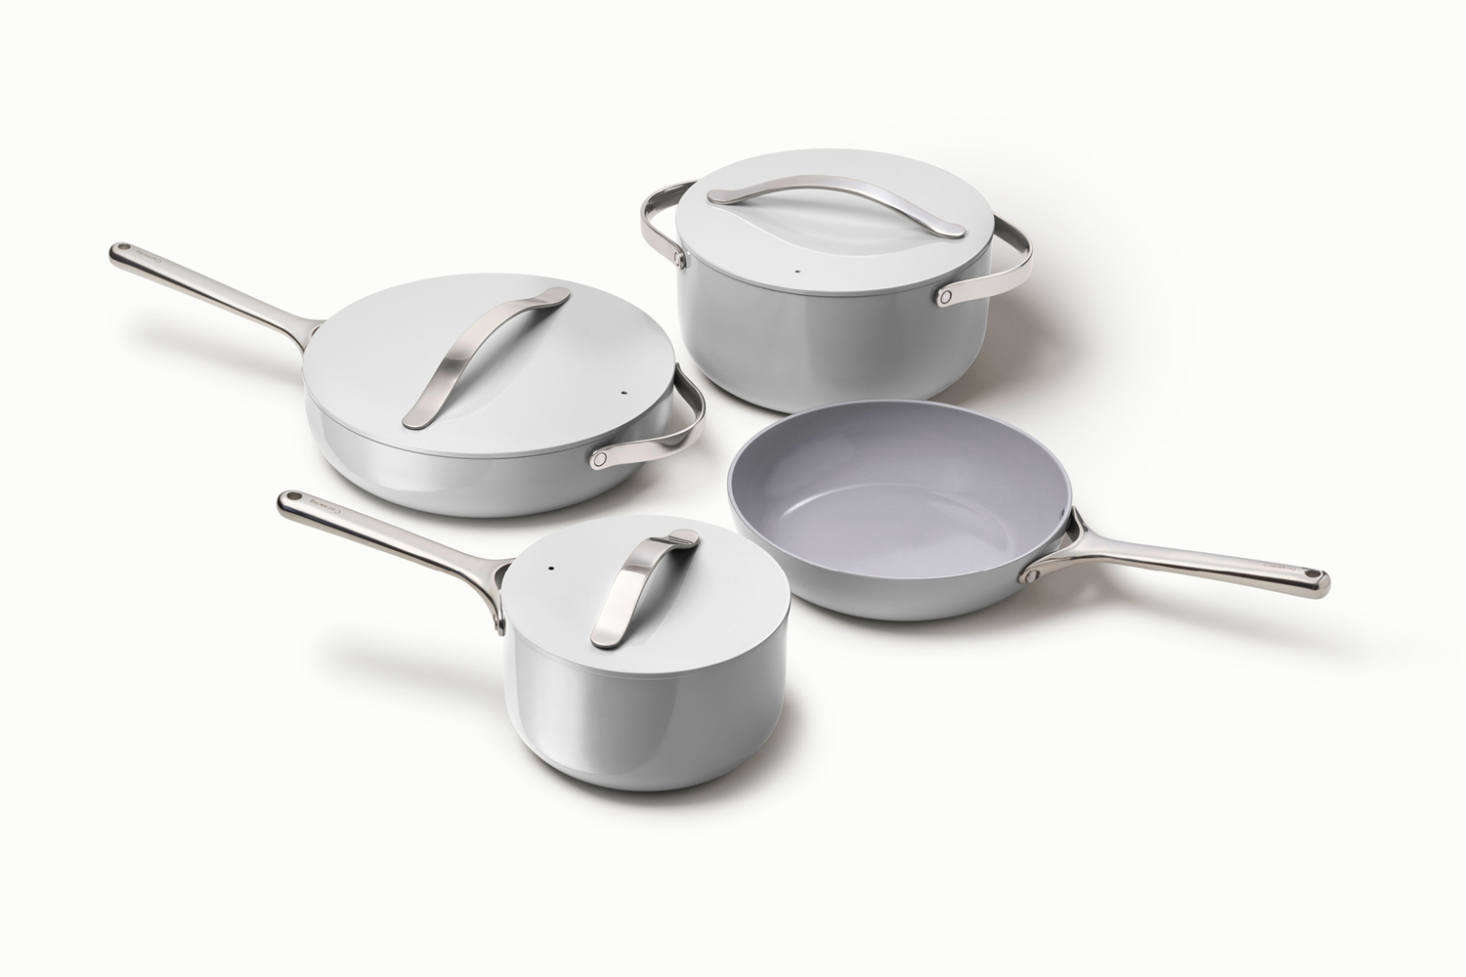 New cookware brand Caraway is focused on healthy, non-toxic cookware. The Caraway Cookware & Cabinet Organizer Set is made up of four ceramic-coated pots and pans made without PFOA, PTFE, lead, cadmium, nickel, or other toxic metals. The ceramic surface is naturally non-stick and pans are are not made by way of a toxic hard anodization process. The set which also includes four magnetic pan racks and a canvas lid holder is $395 at Caraway. [Caraway let us know that with the code REMODELISTA, Remodelista readers receive -percent off the set.)